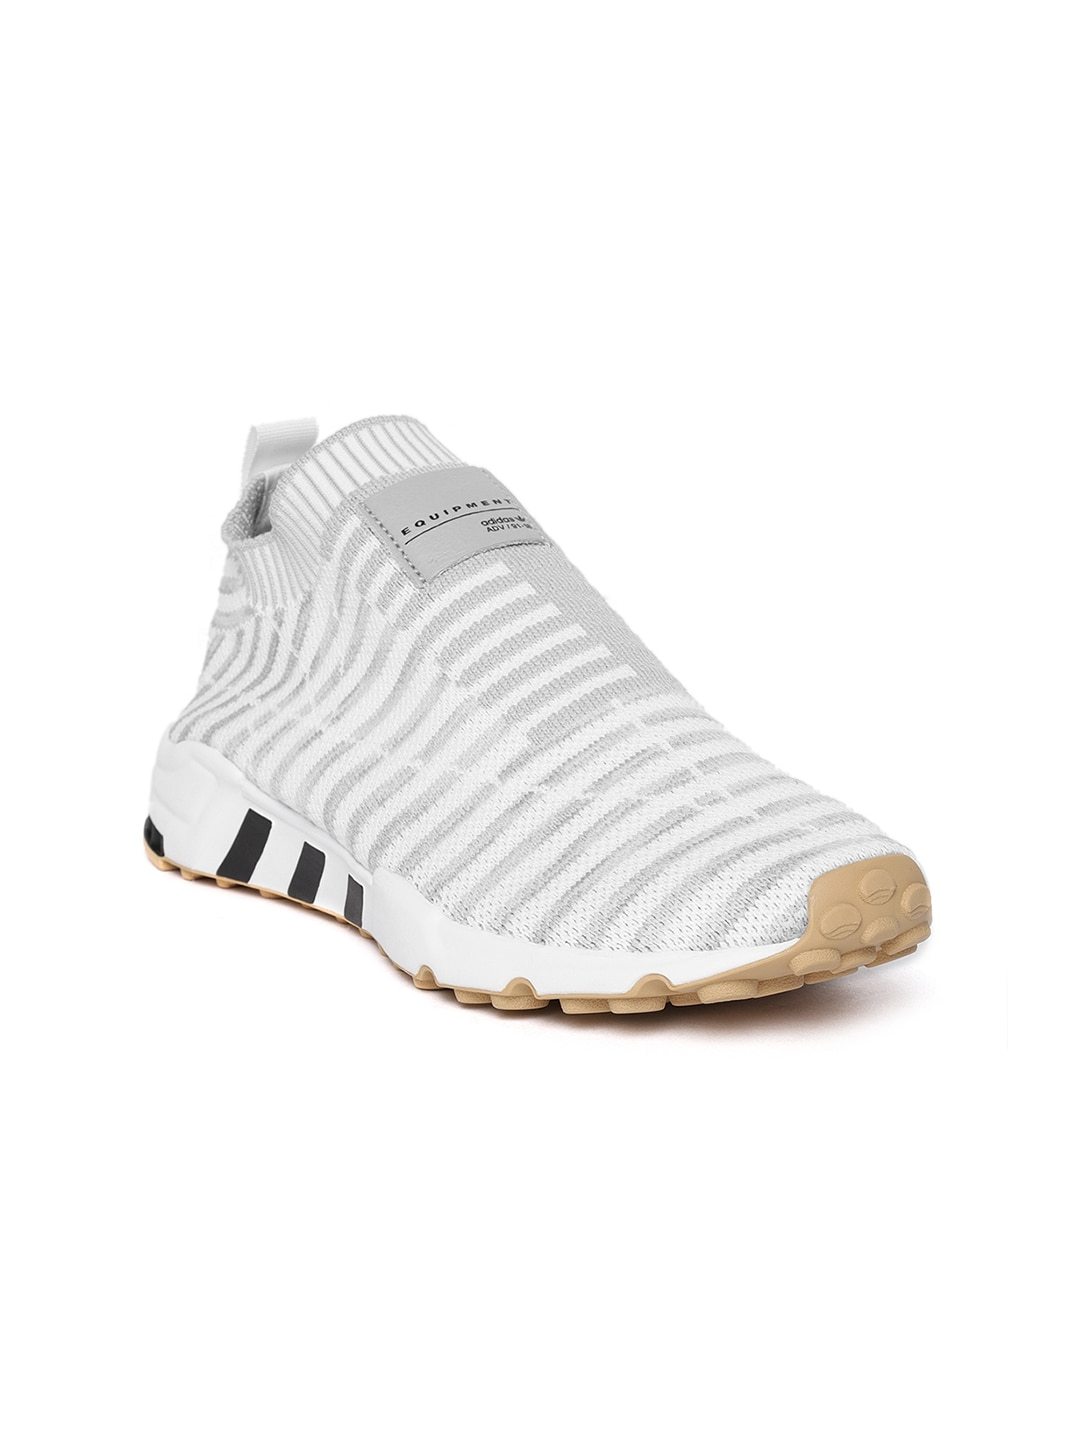 watch a6c59 46dee Adidas Originals - Buy Adidas Originals Products Online   Myntra